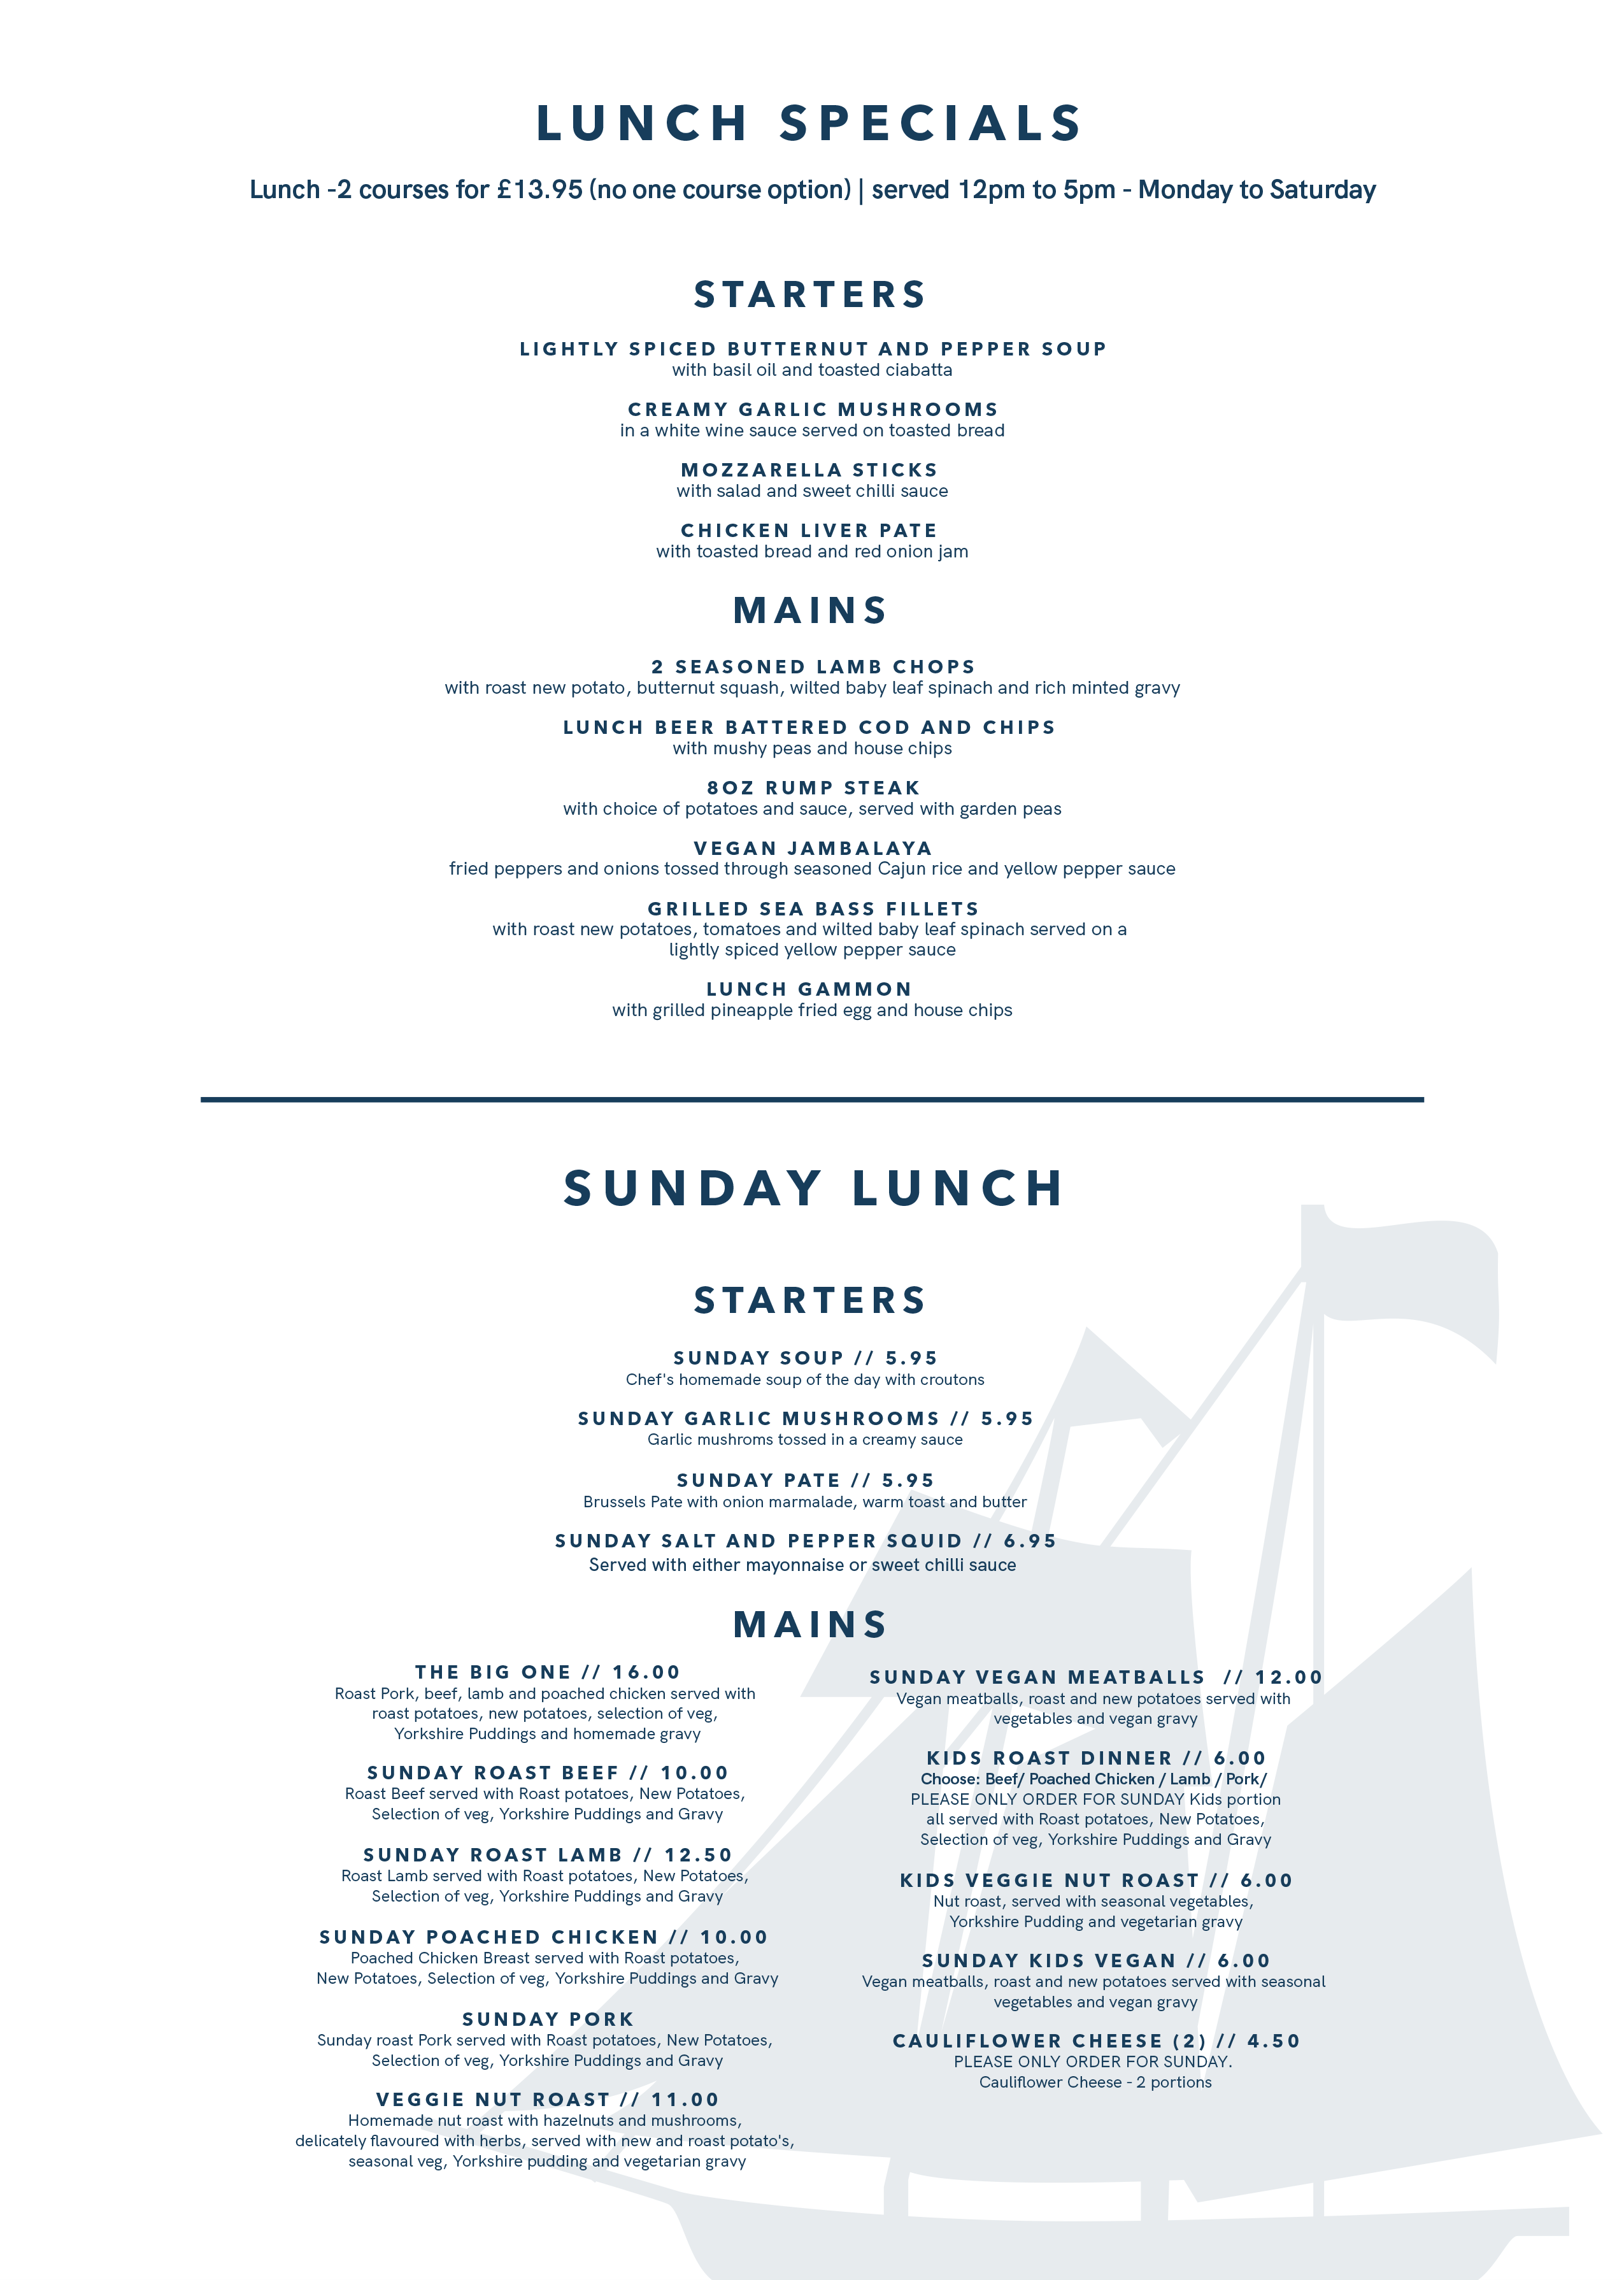 Ship Lunch and Sunday Menu